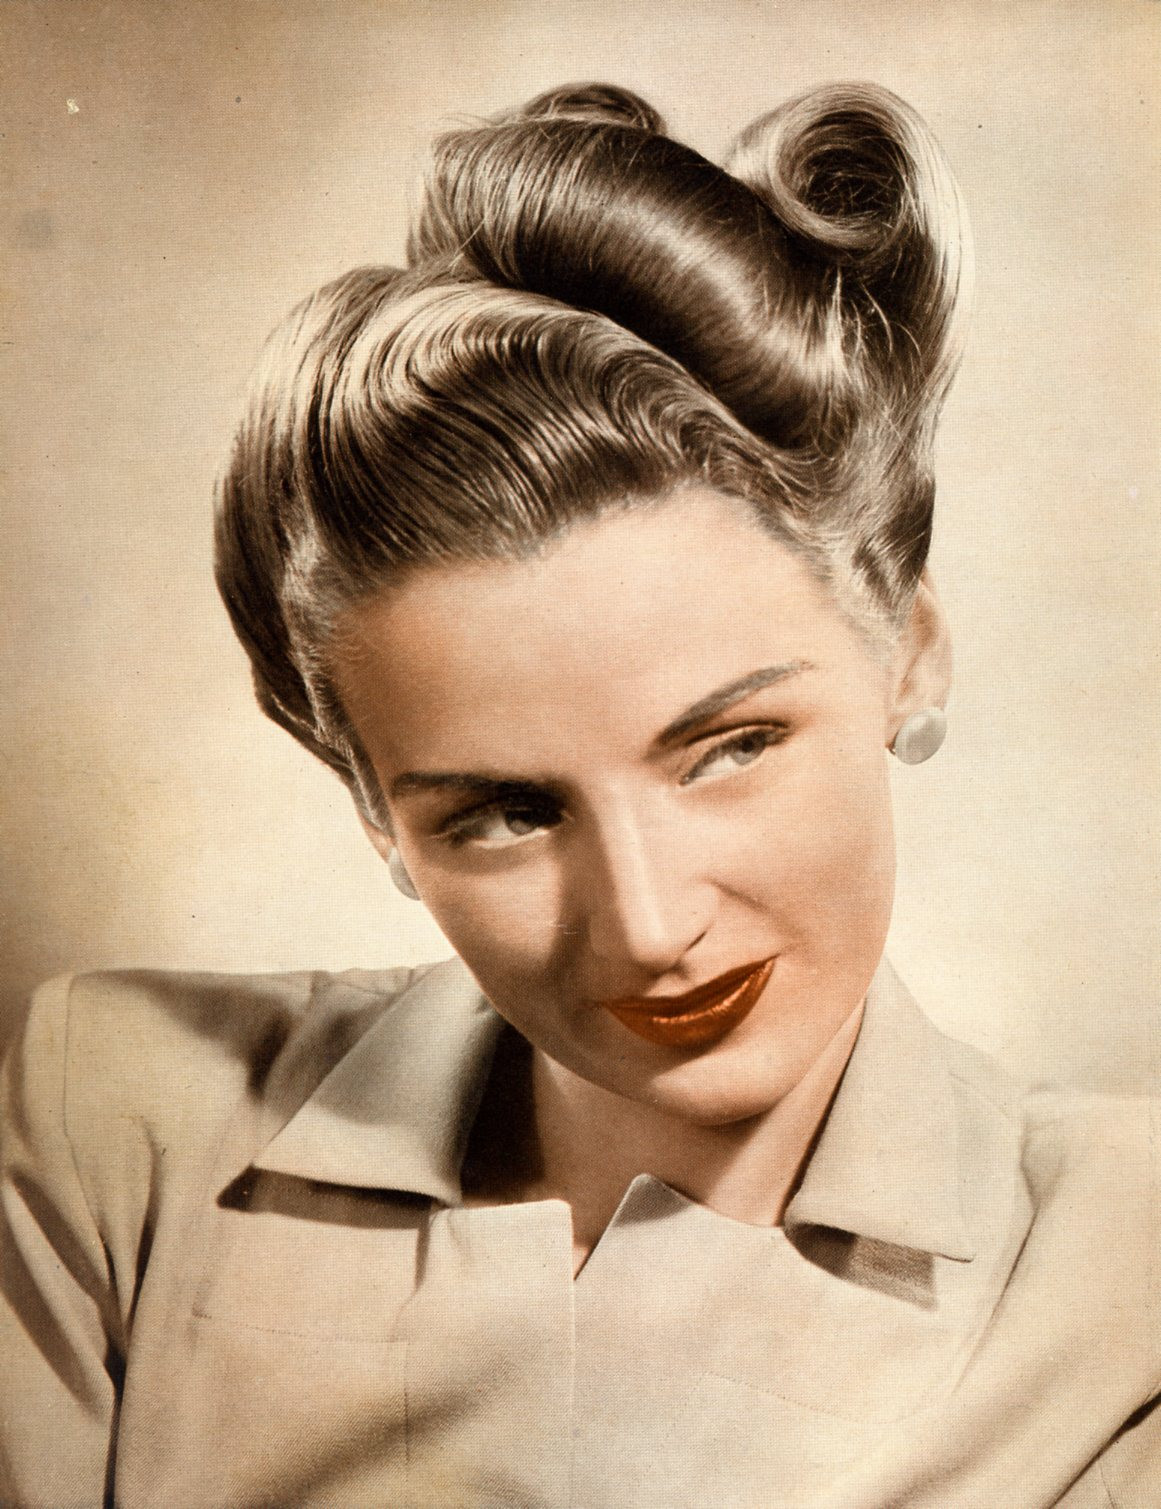 Vintage Updo Hairstyle  20 Vintage Hairstyles for Long Hair in 2016 MagMent